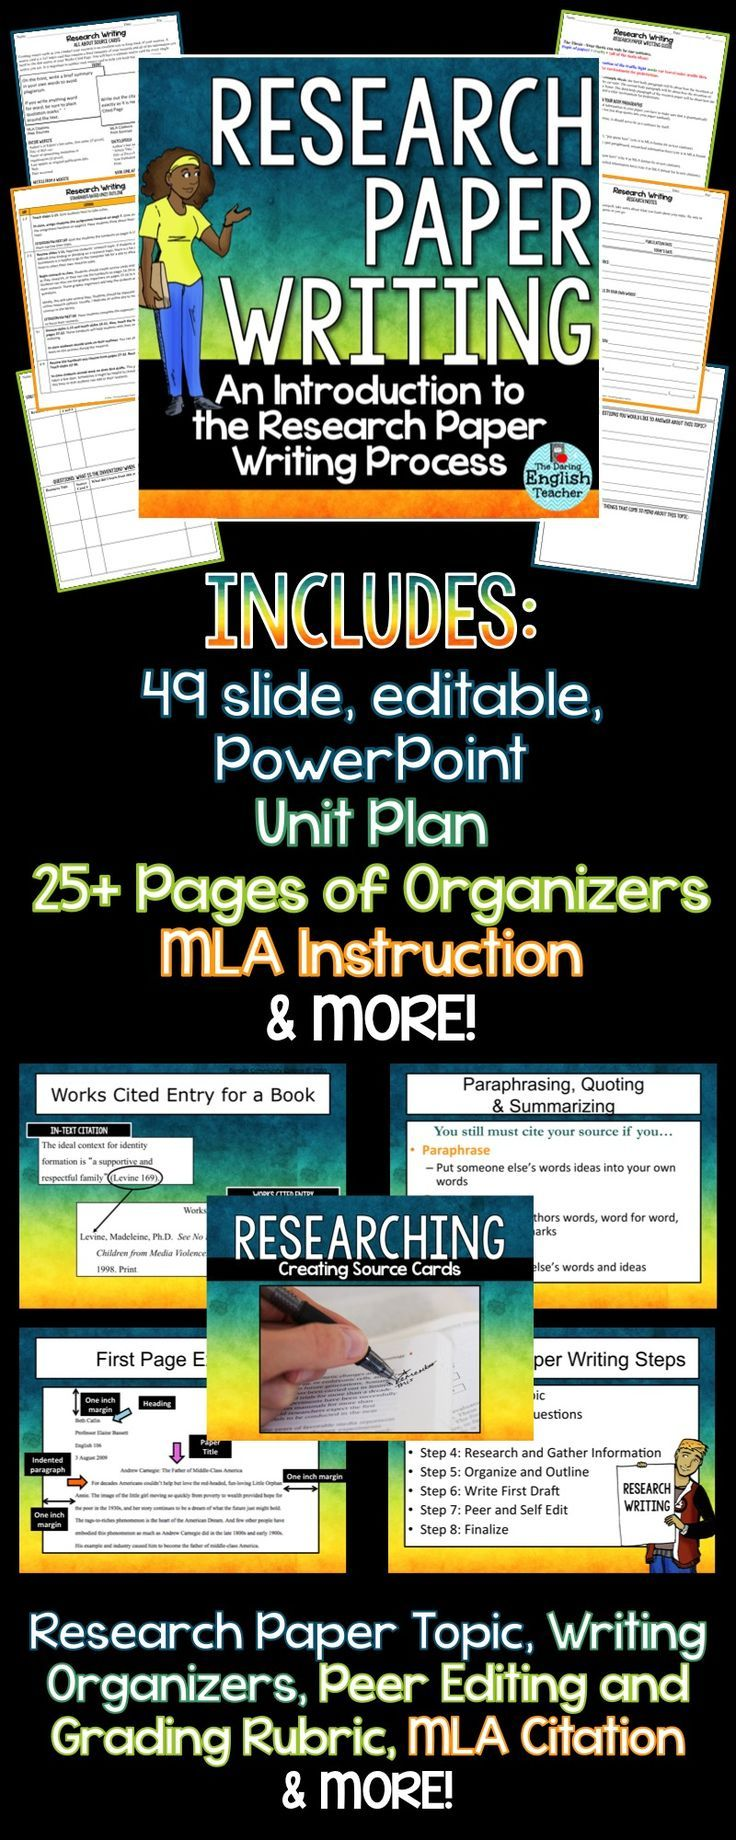 writing research paper powerpoint Writing a college research paper is a process‐ oriented activity that encourages independent learning gathering notes, organizing them, shaping your thoughts, and writing a paper should give you a strong sense of satisfaction allow yourself plenty of .